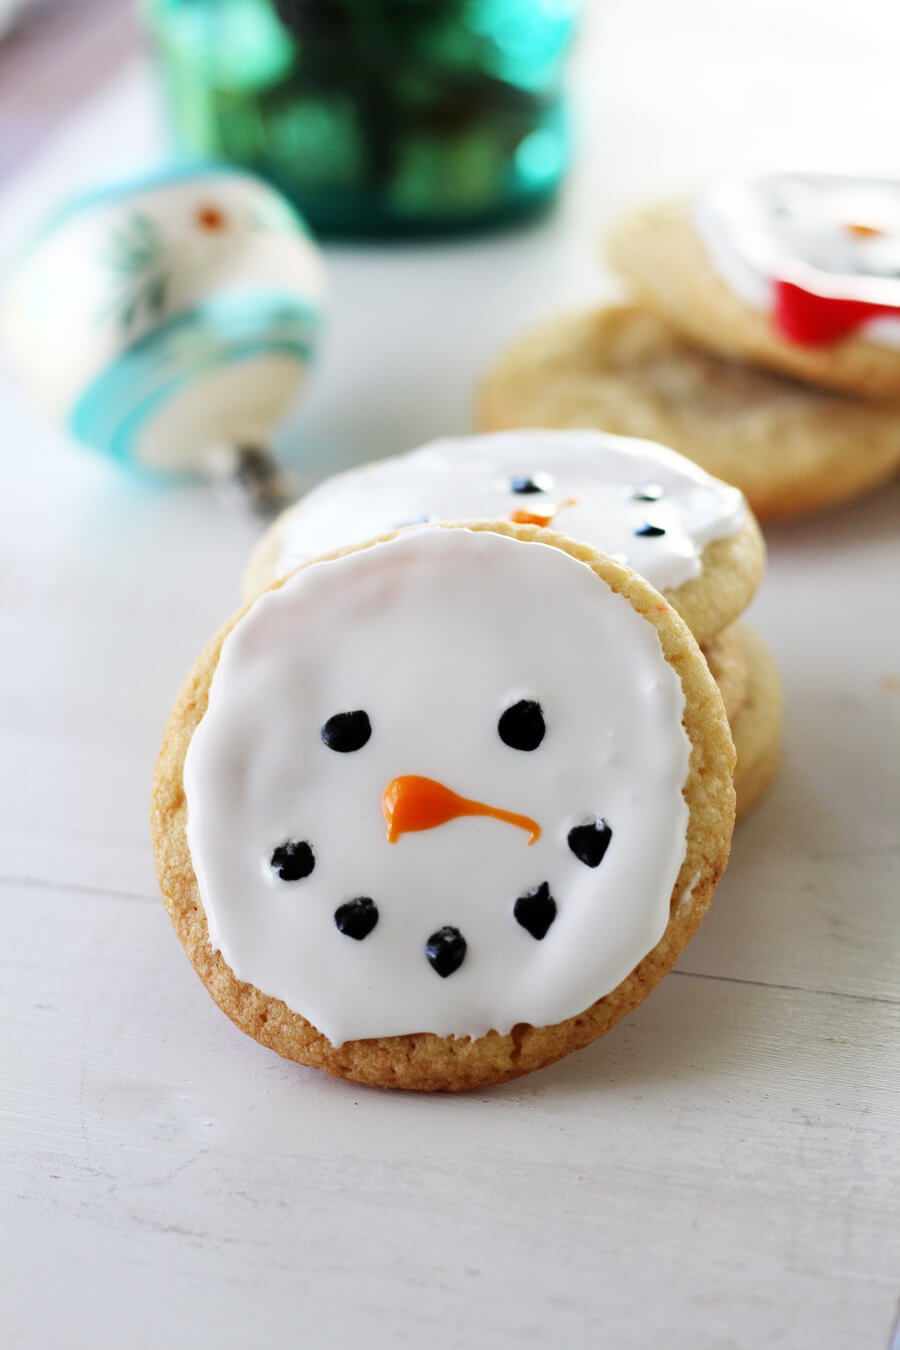 Snowman Christmas Cookies | Buy This Cook That This recipe for Snowman Christmas Cookies is BOTH. Cookies + holidays go hand in hand, and this is a delicious twist on a classic sugar cookie. So put on your happy faces and let's build snowman cookies.